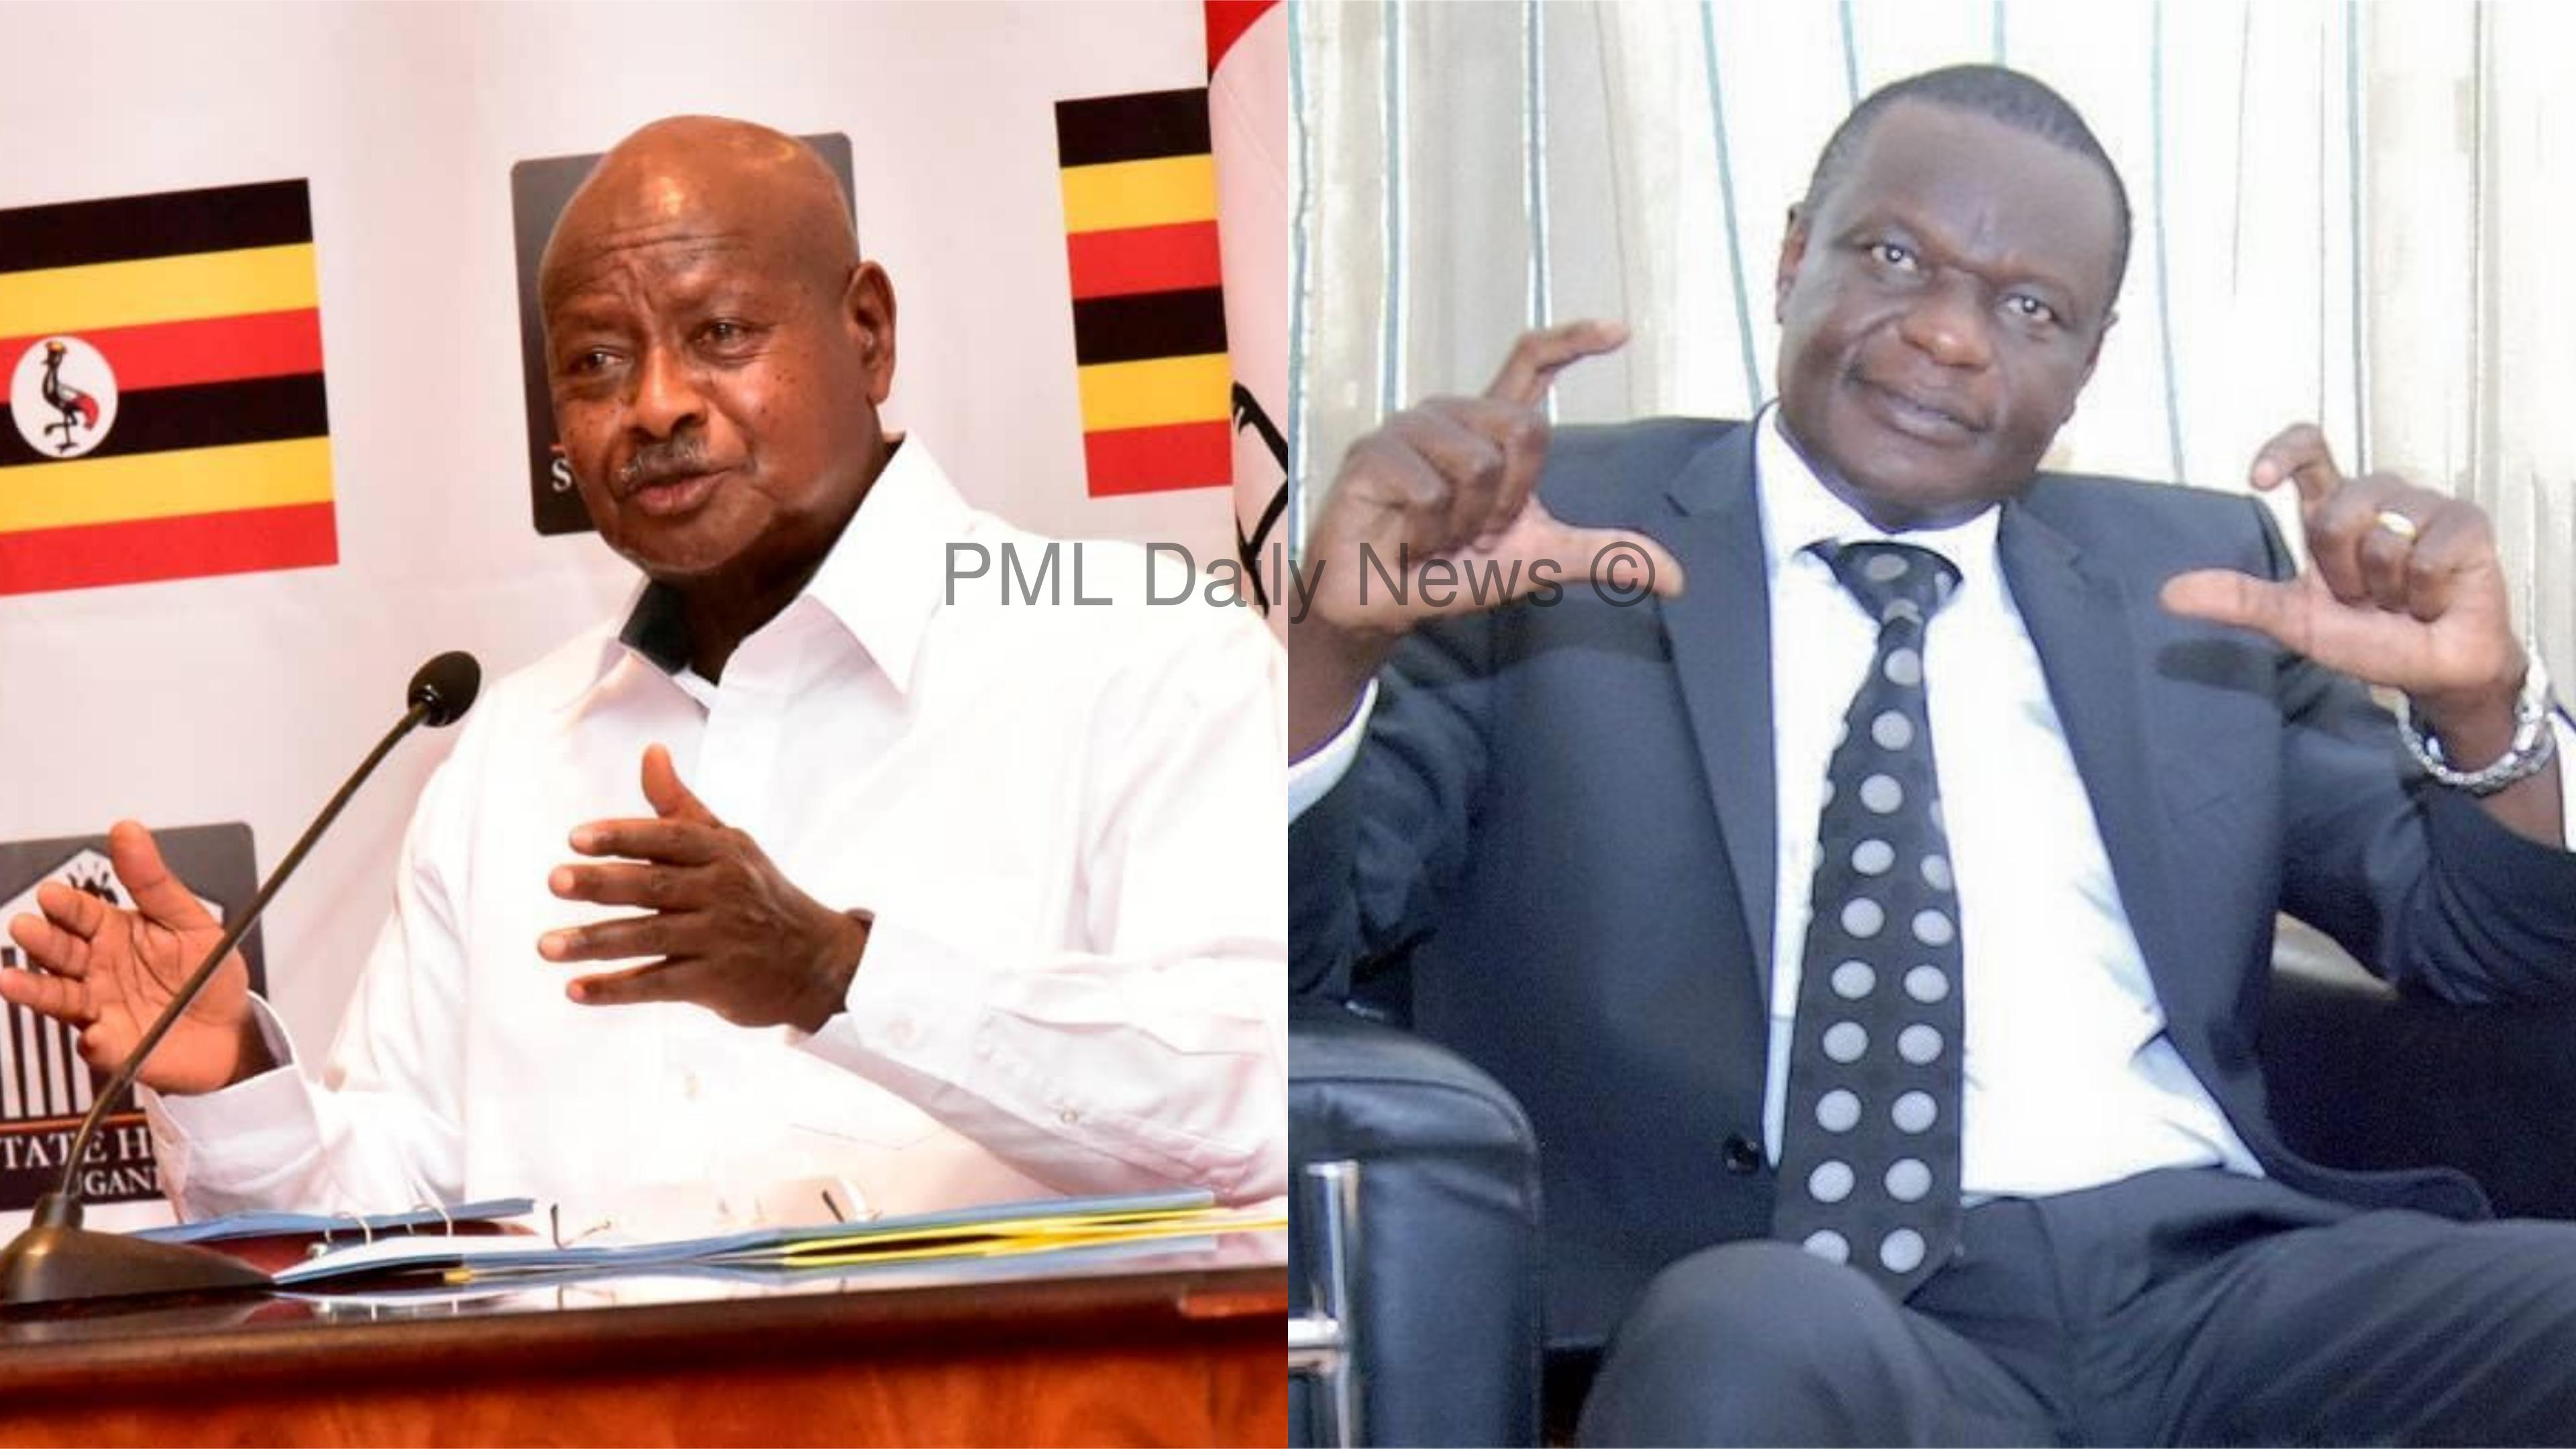 Dokolo South MO, Felix Okong has expressed dissatisfaction over President Museveni's remarks on Voice of Lango in his September 9 Nation Address (FILE PHOTO MONTAGE)